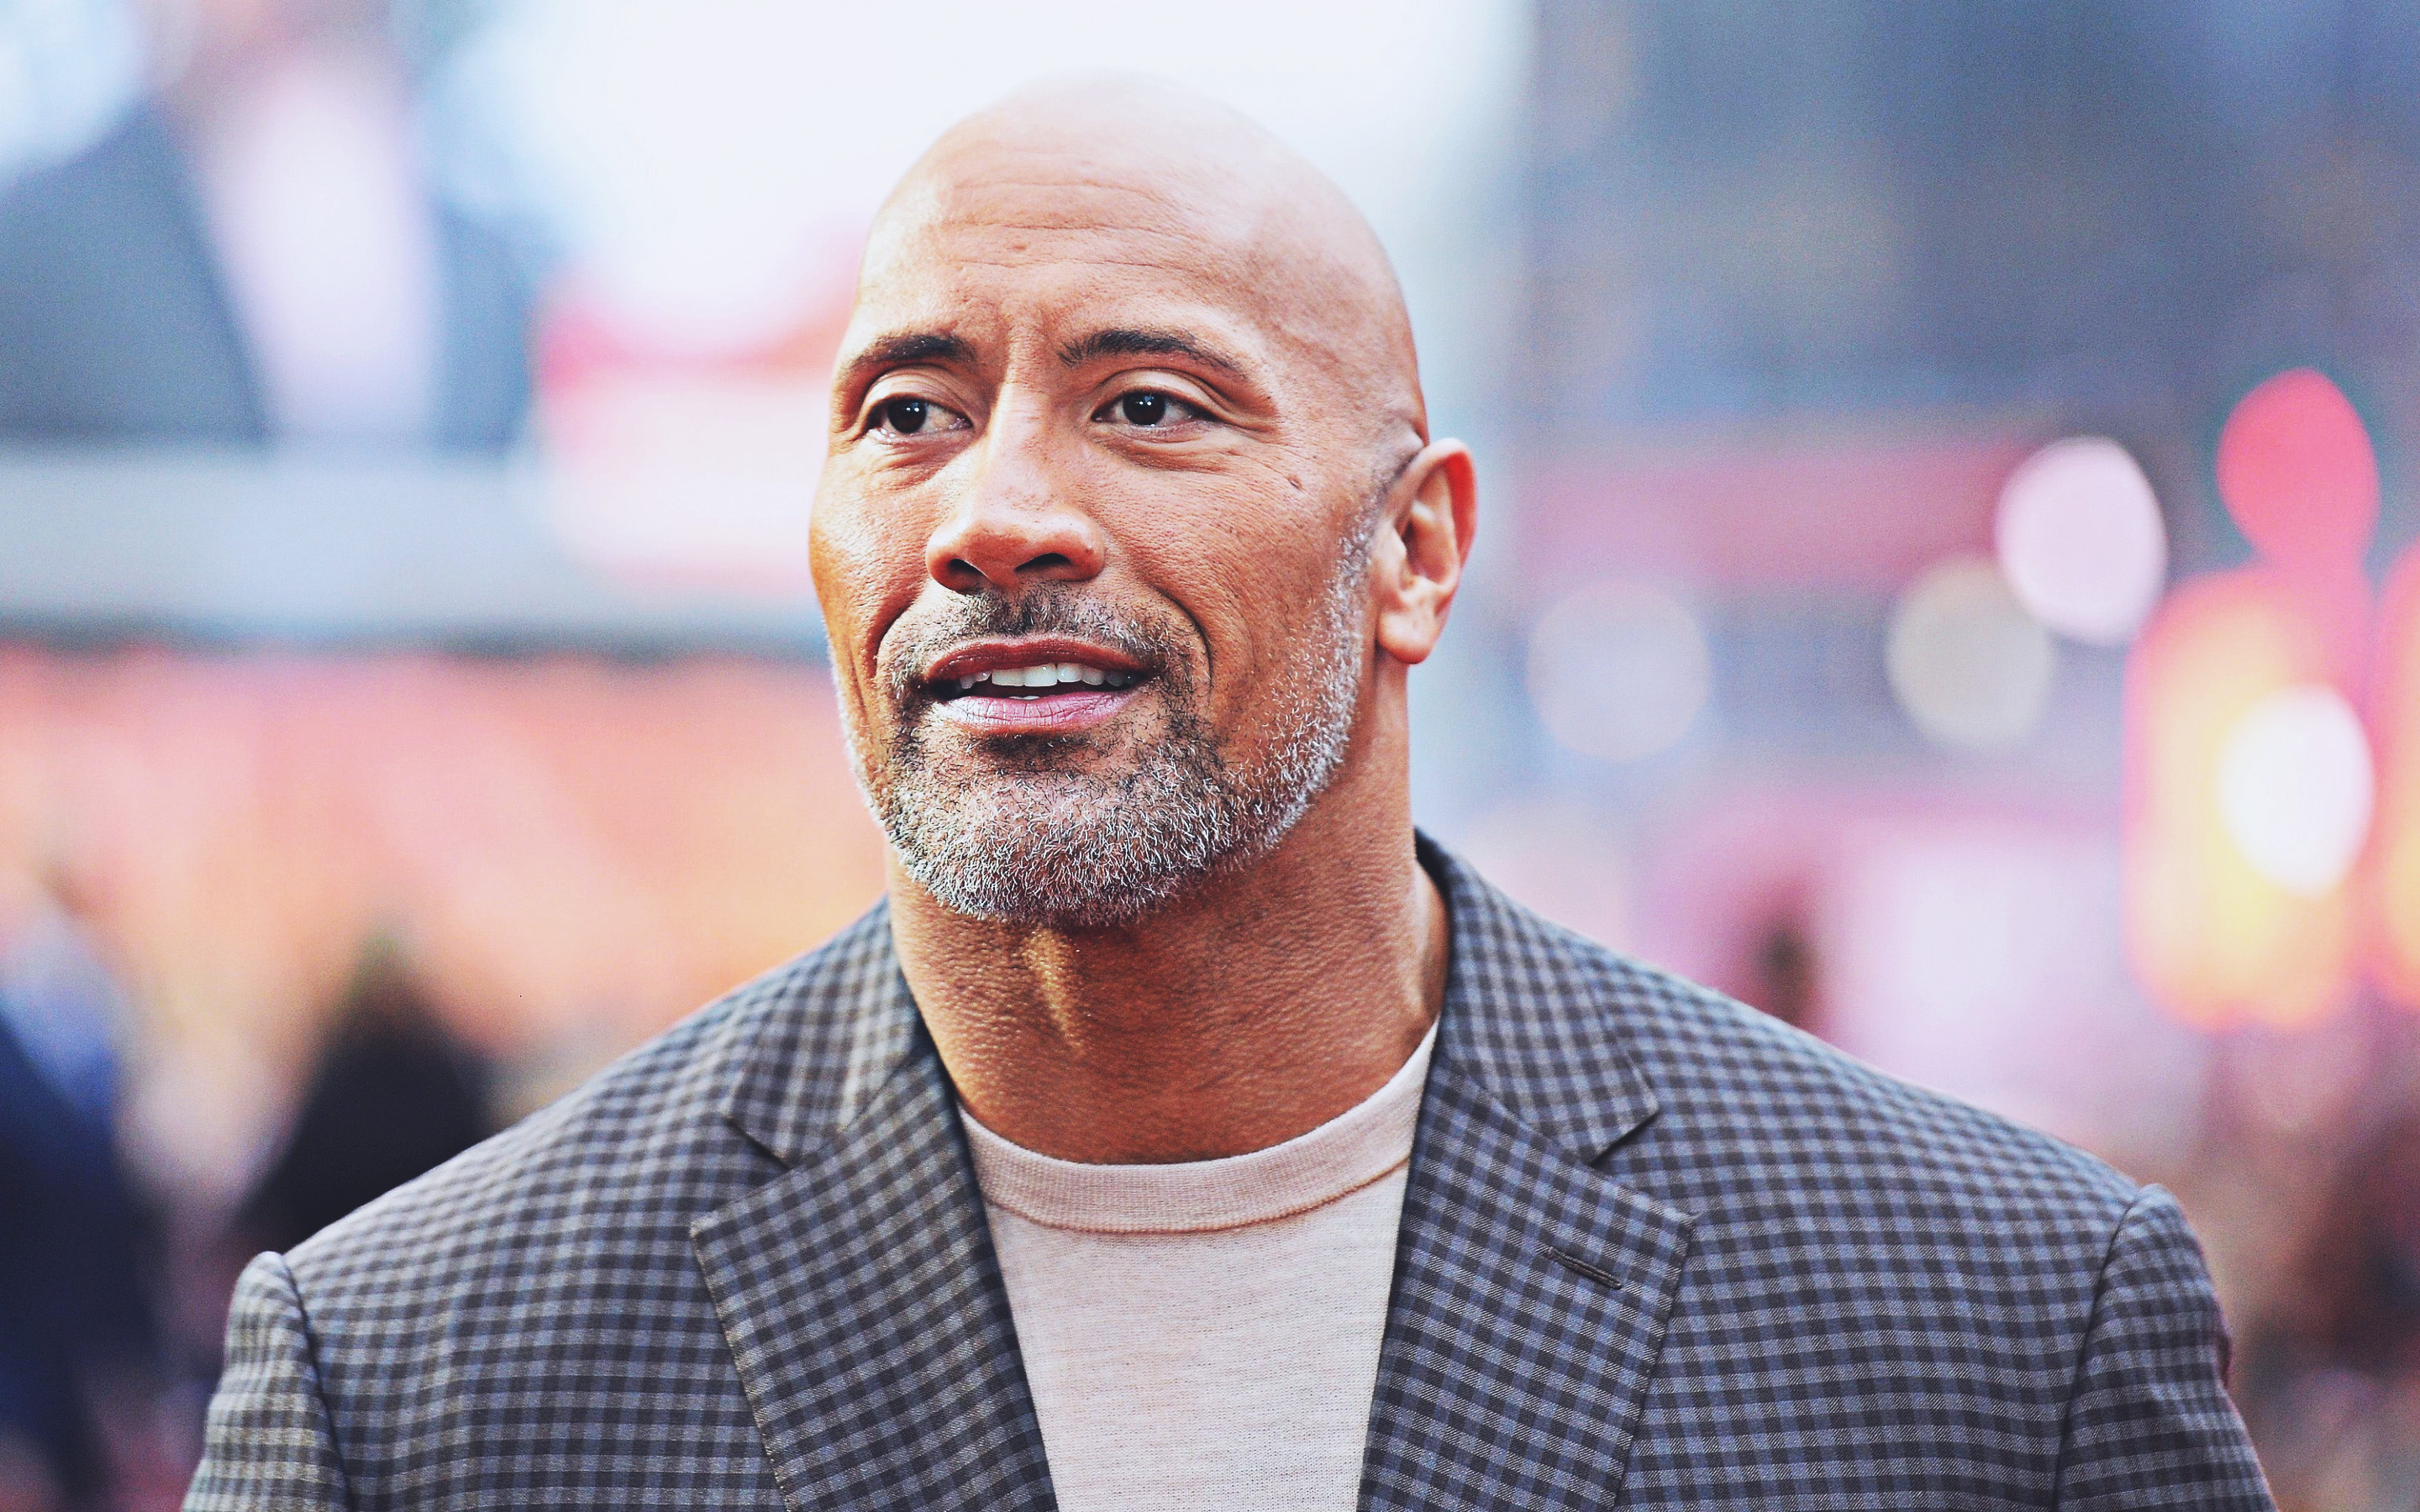 Dwayne Johnson, 2019, O Rock, Hollywood, o ator americano, estrelas de cinema, Dwayne Douglas Johnson, celebridade americana, Dwayne Johnson photoshoot